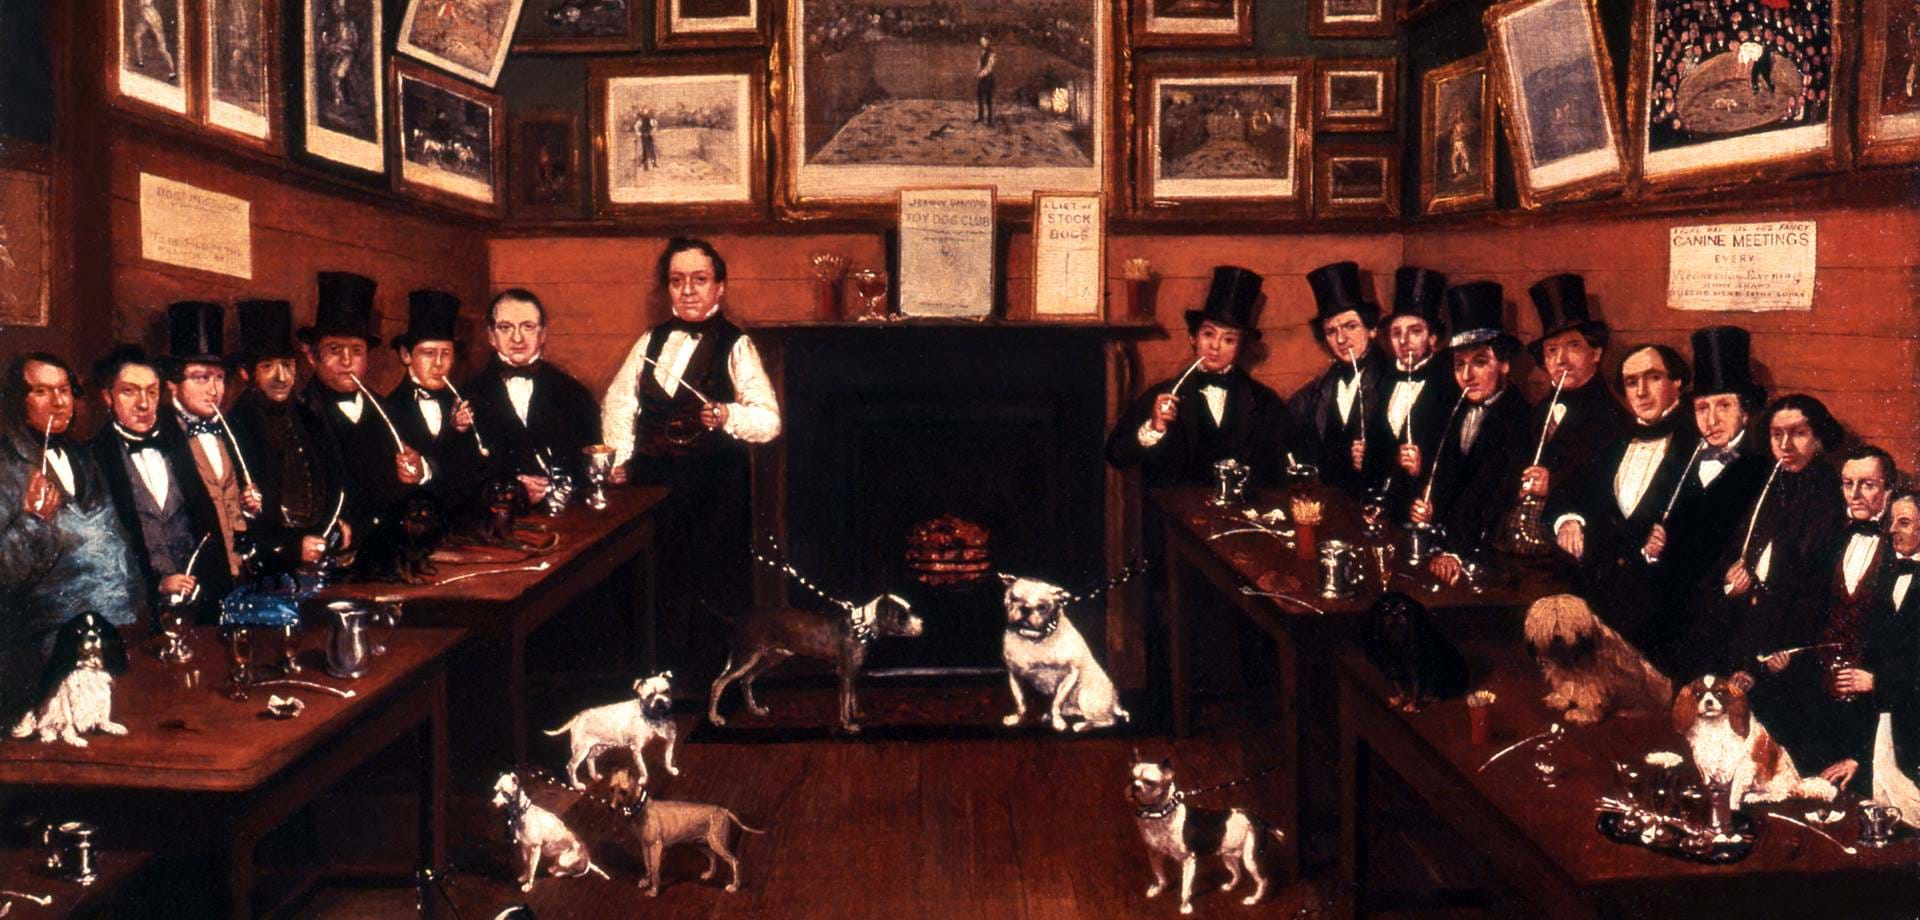 An Early Canine Meeting, R Marhsall, 1855